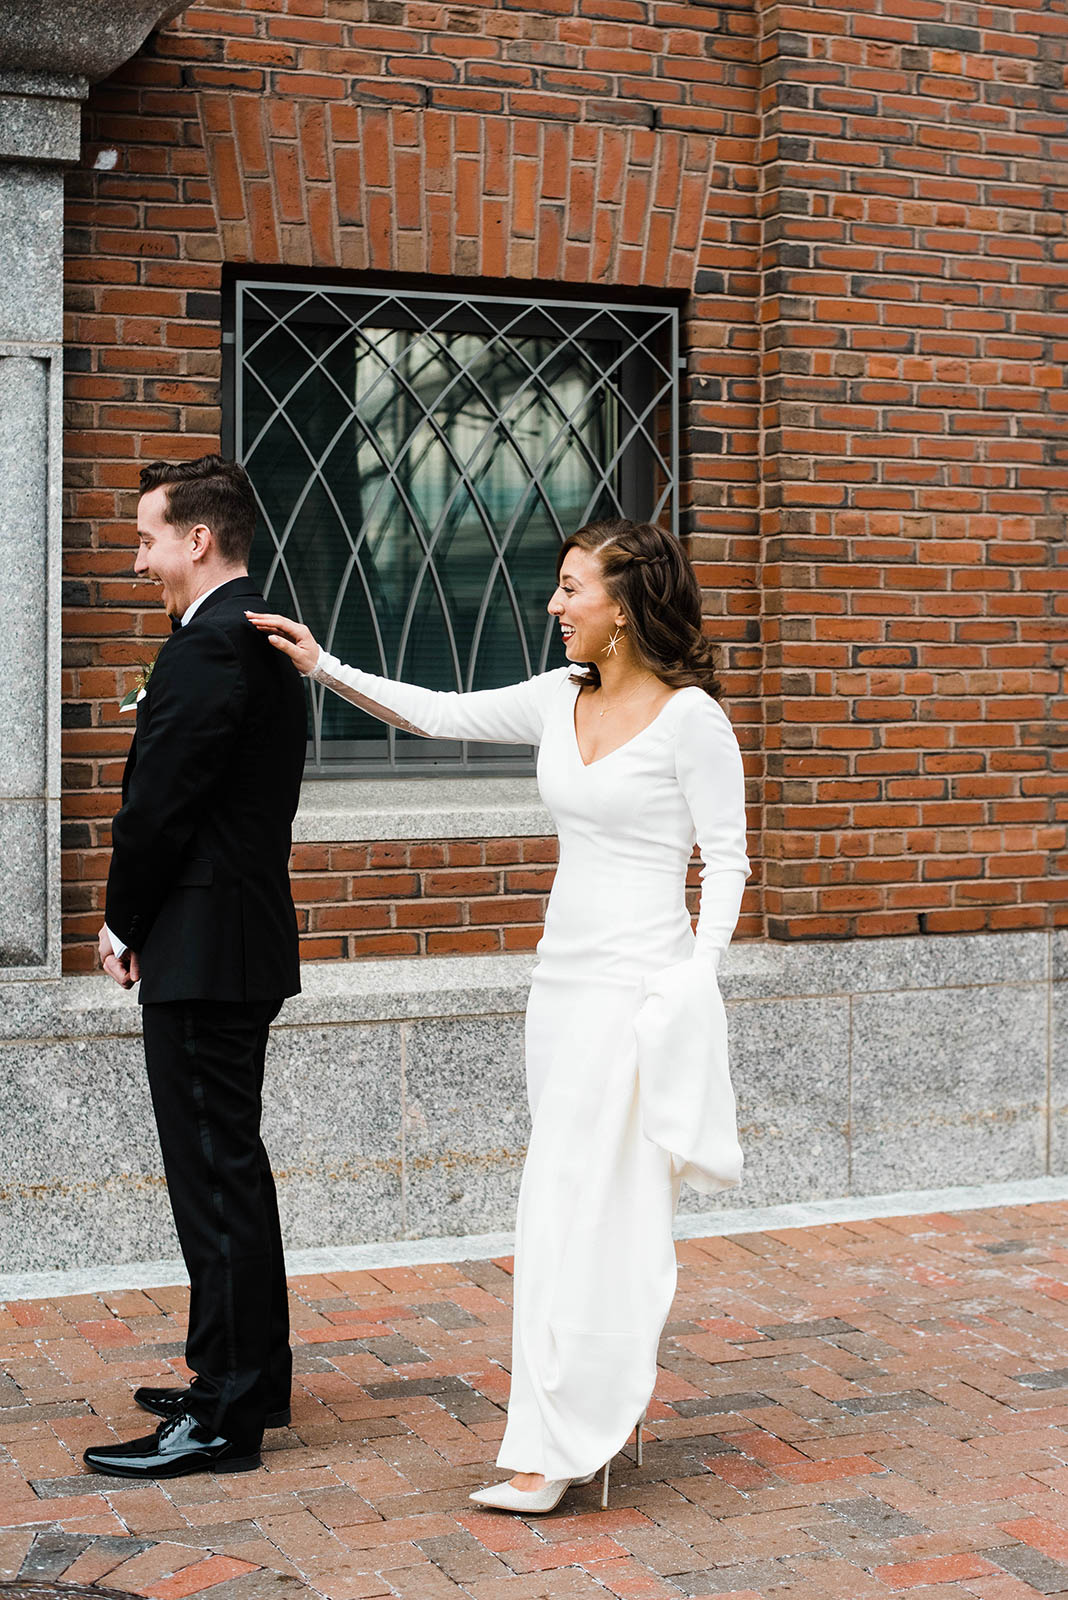 Wedding_Erica_Richie_2018-24.jpg